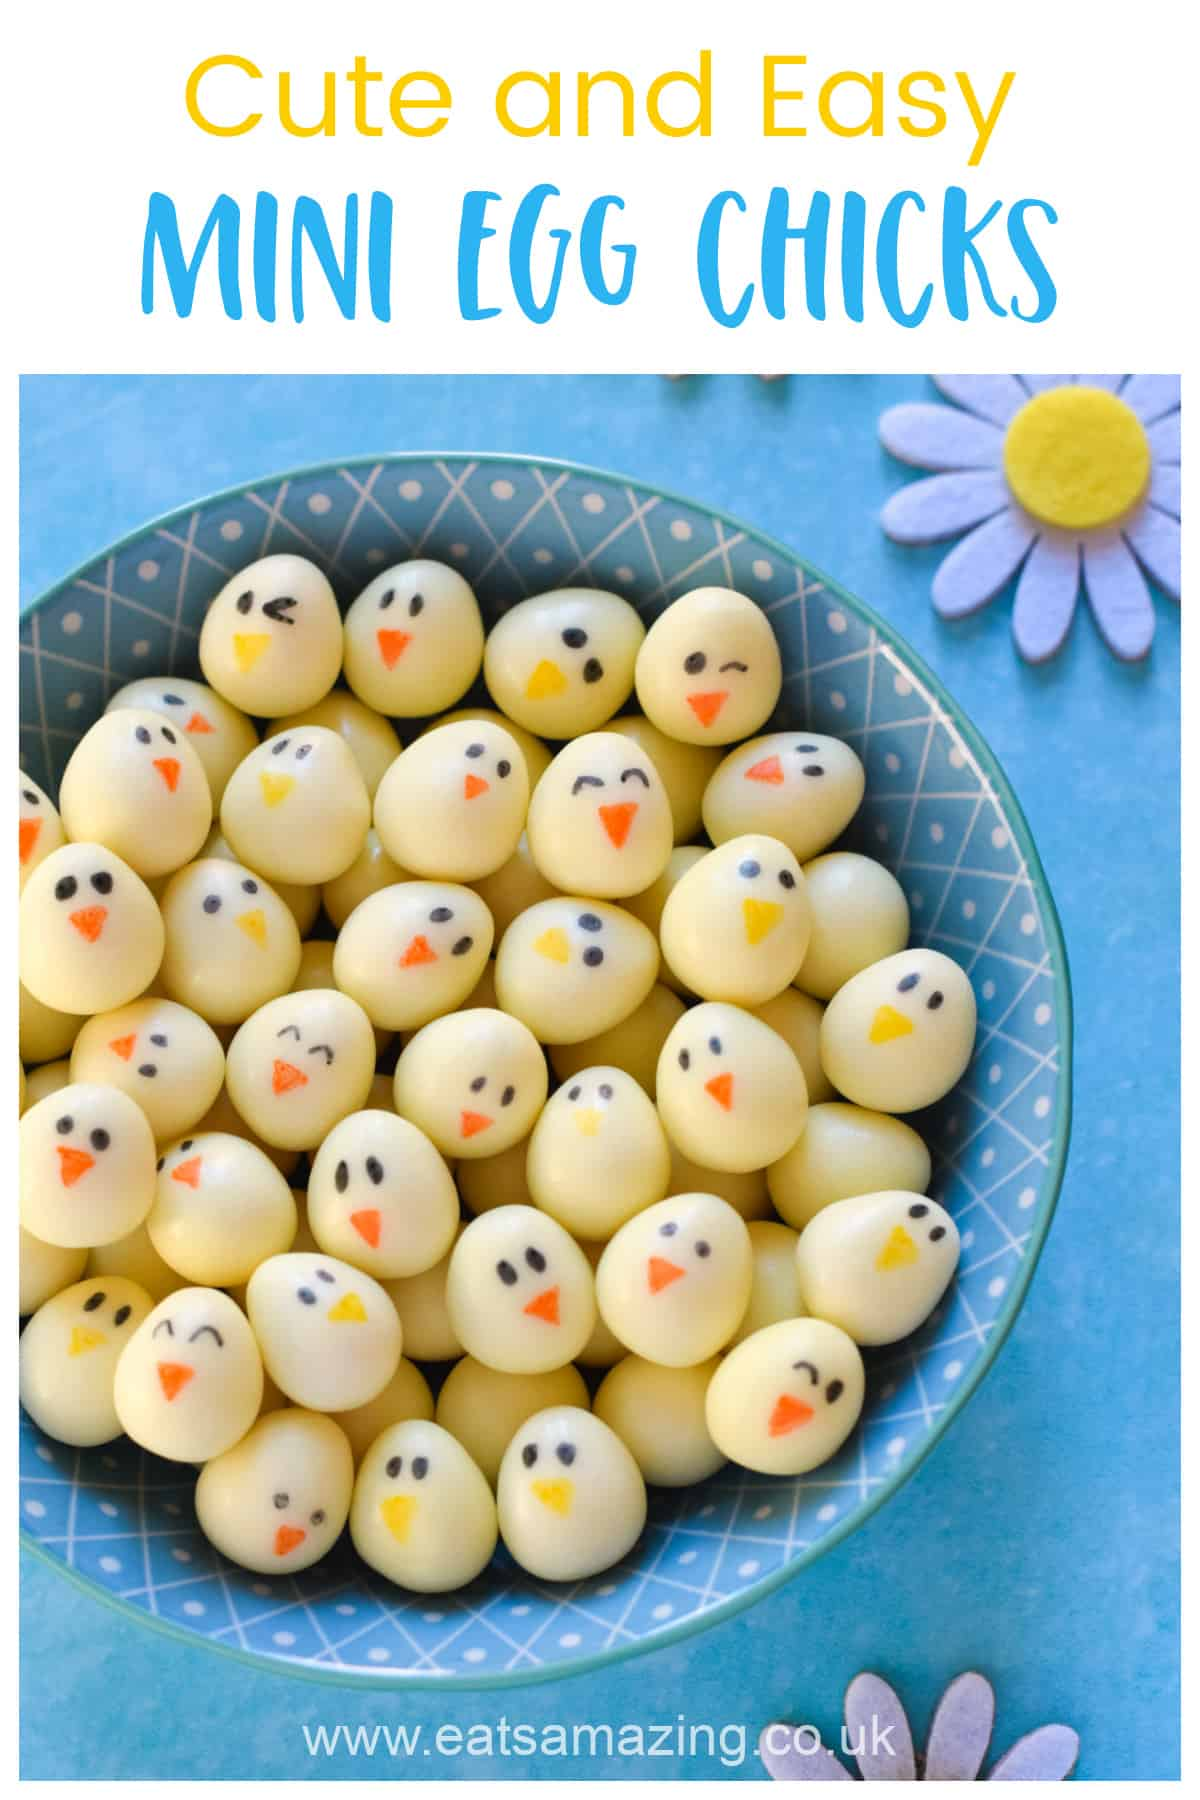 How to make cute and easy Mini Egg Chicks - perfect for Easter gifts and treats